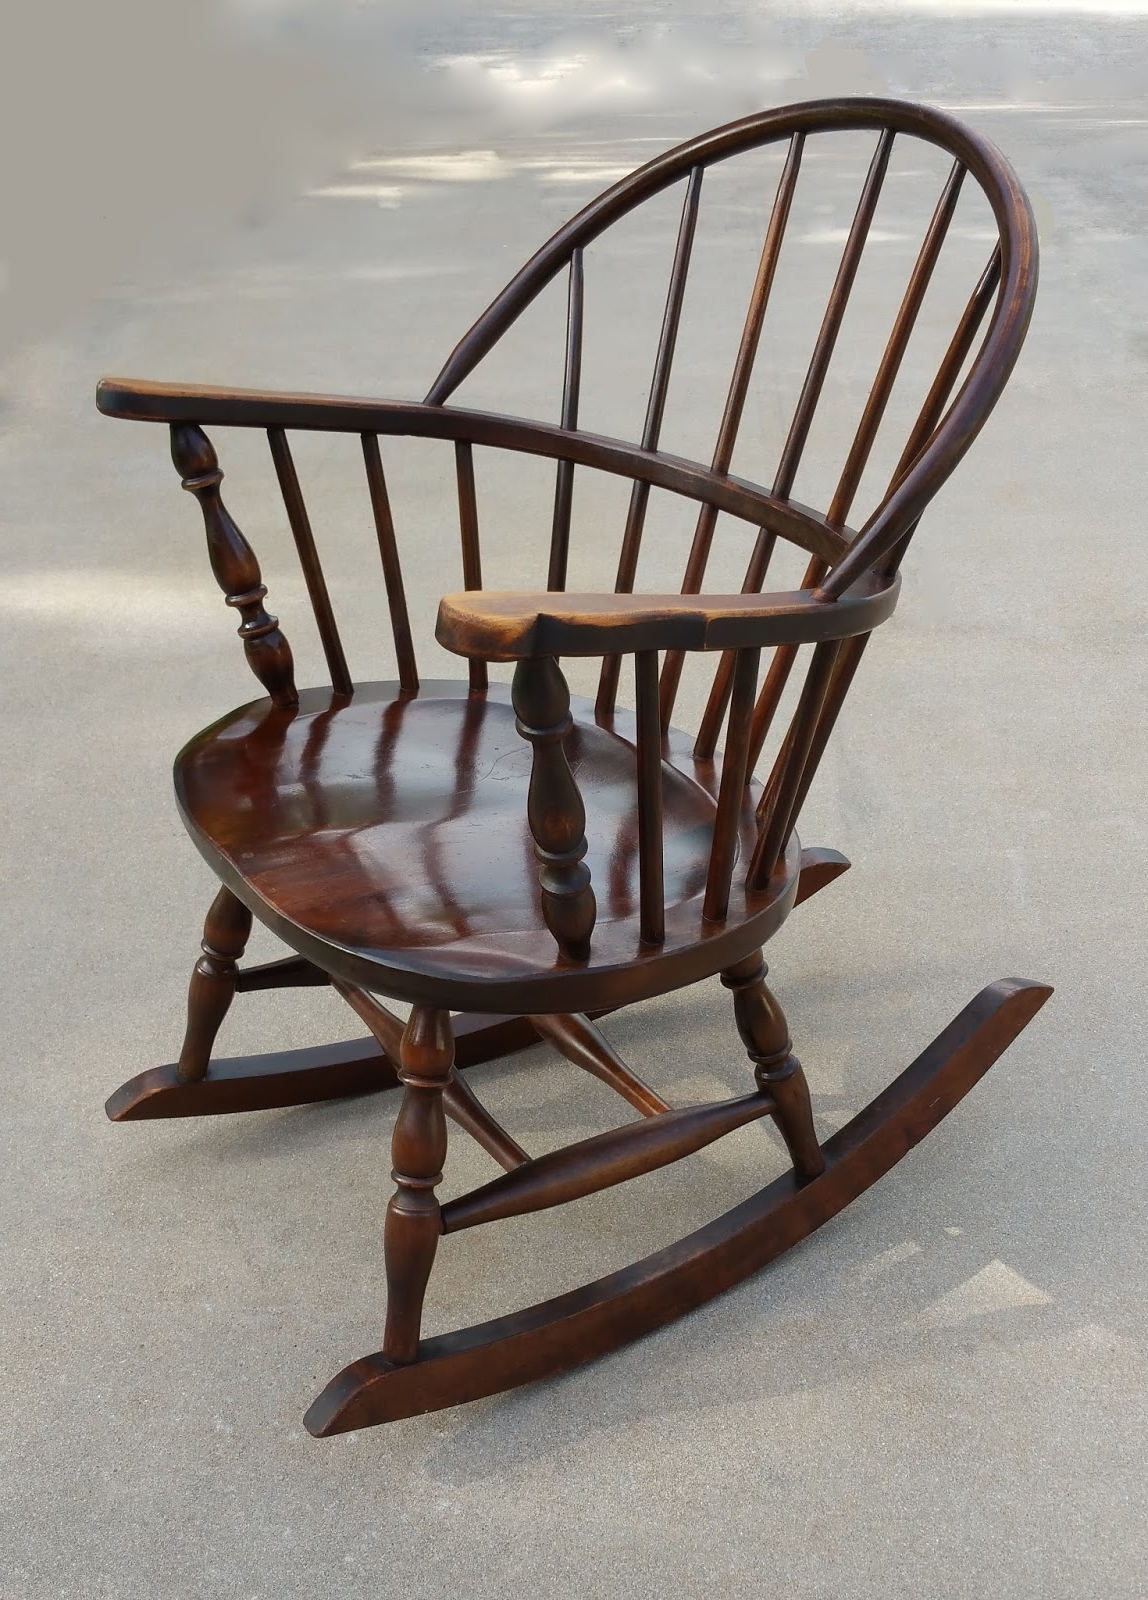 Antique Rocking Chairs Regarding Most Recently Released Antique Windsor Rocking Chair (View 12 of 15)